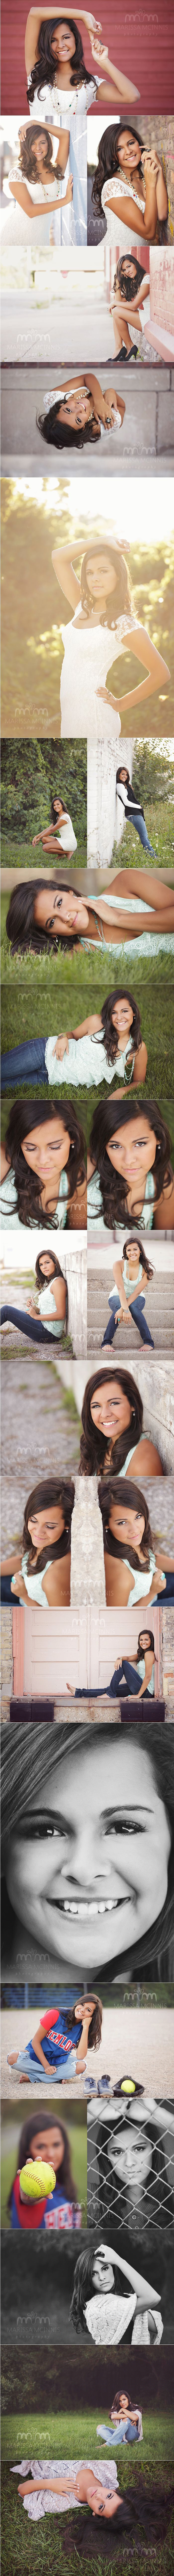 Senior Photo Ideas